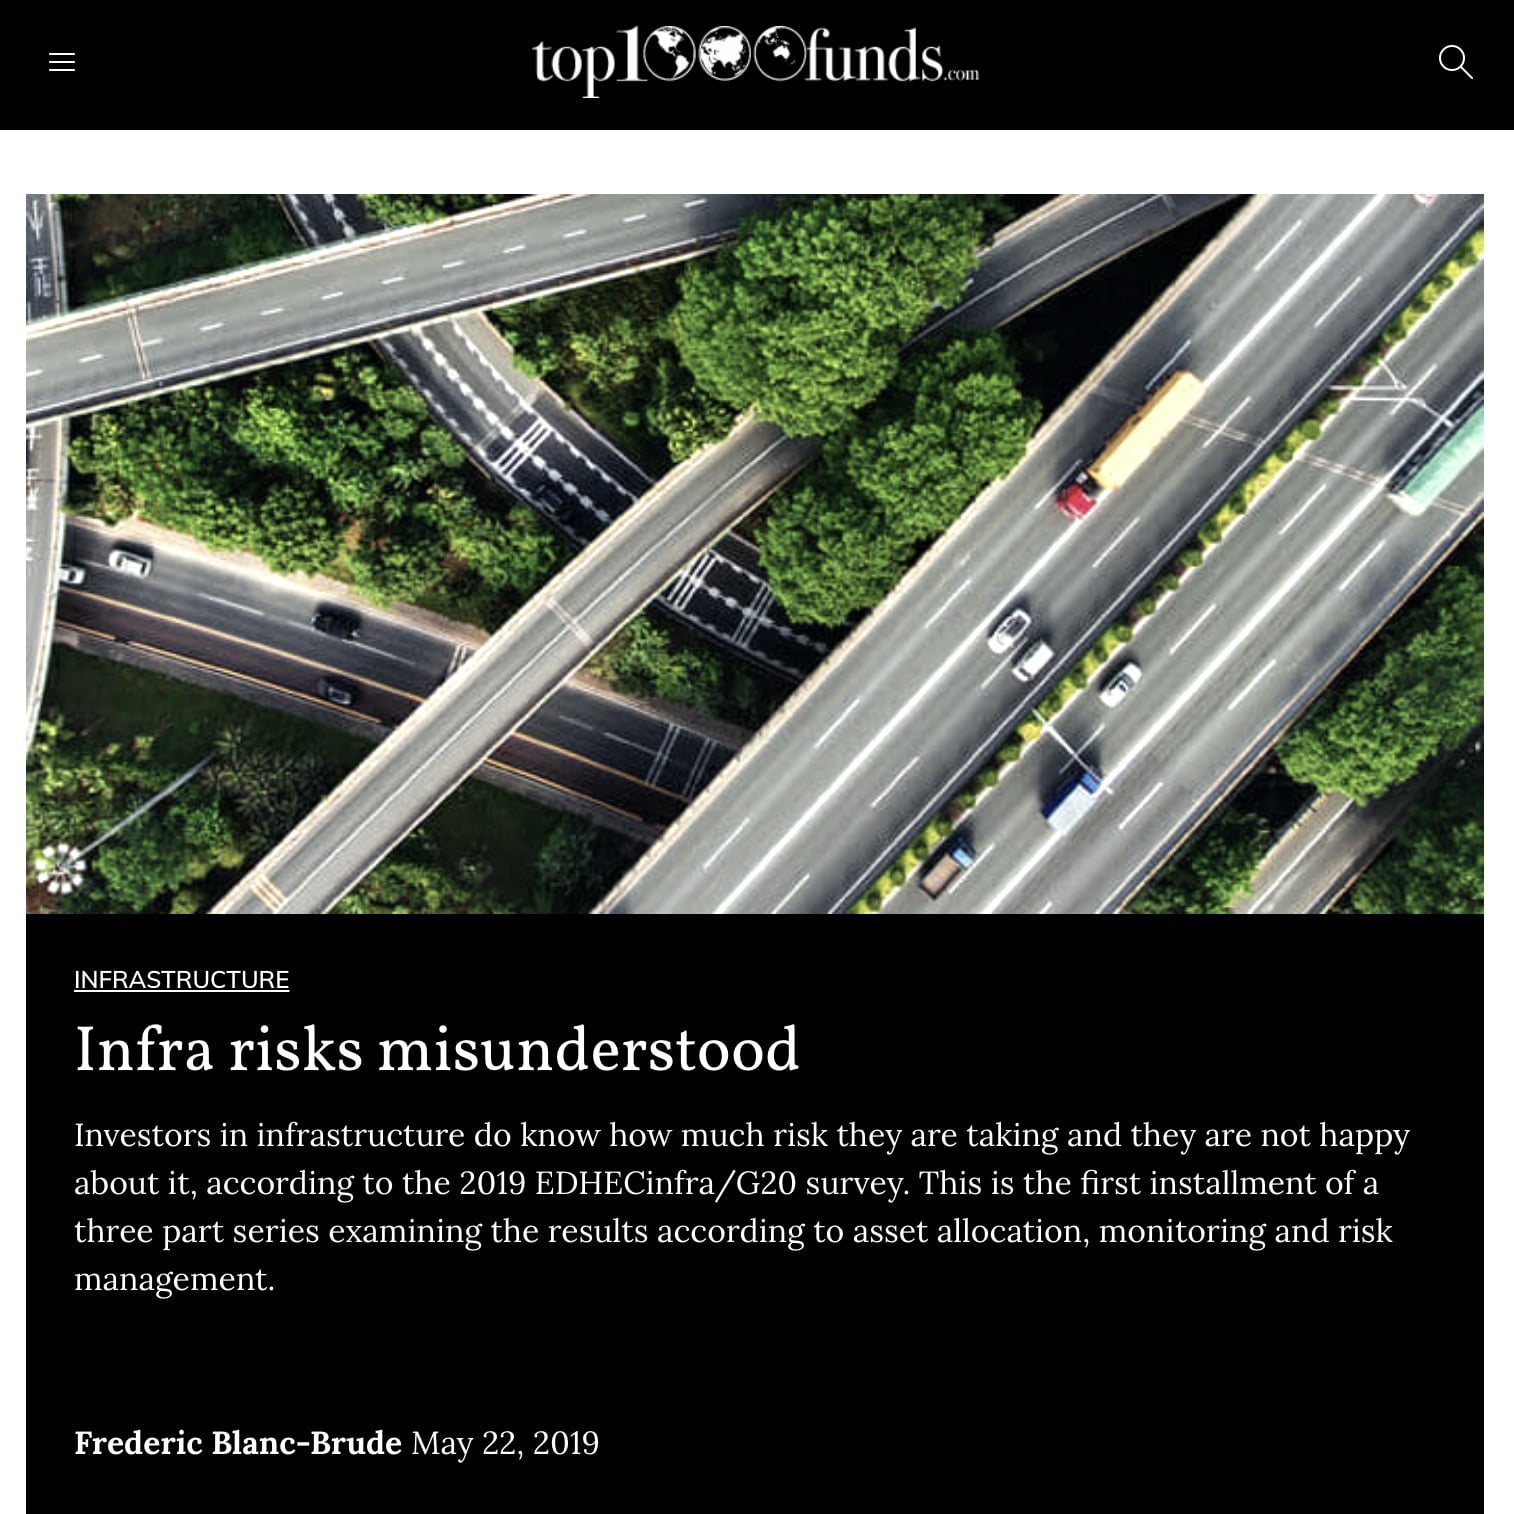 infra risks misunderstood